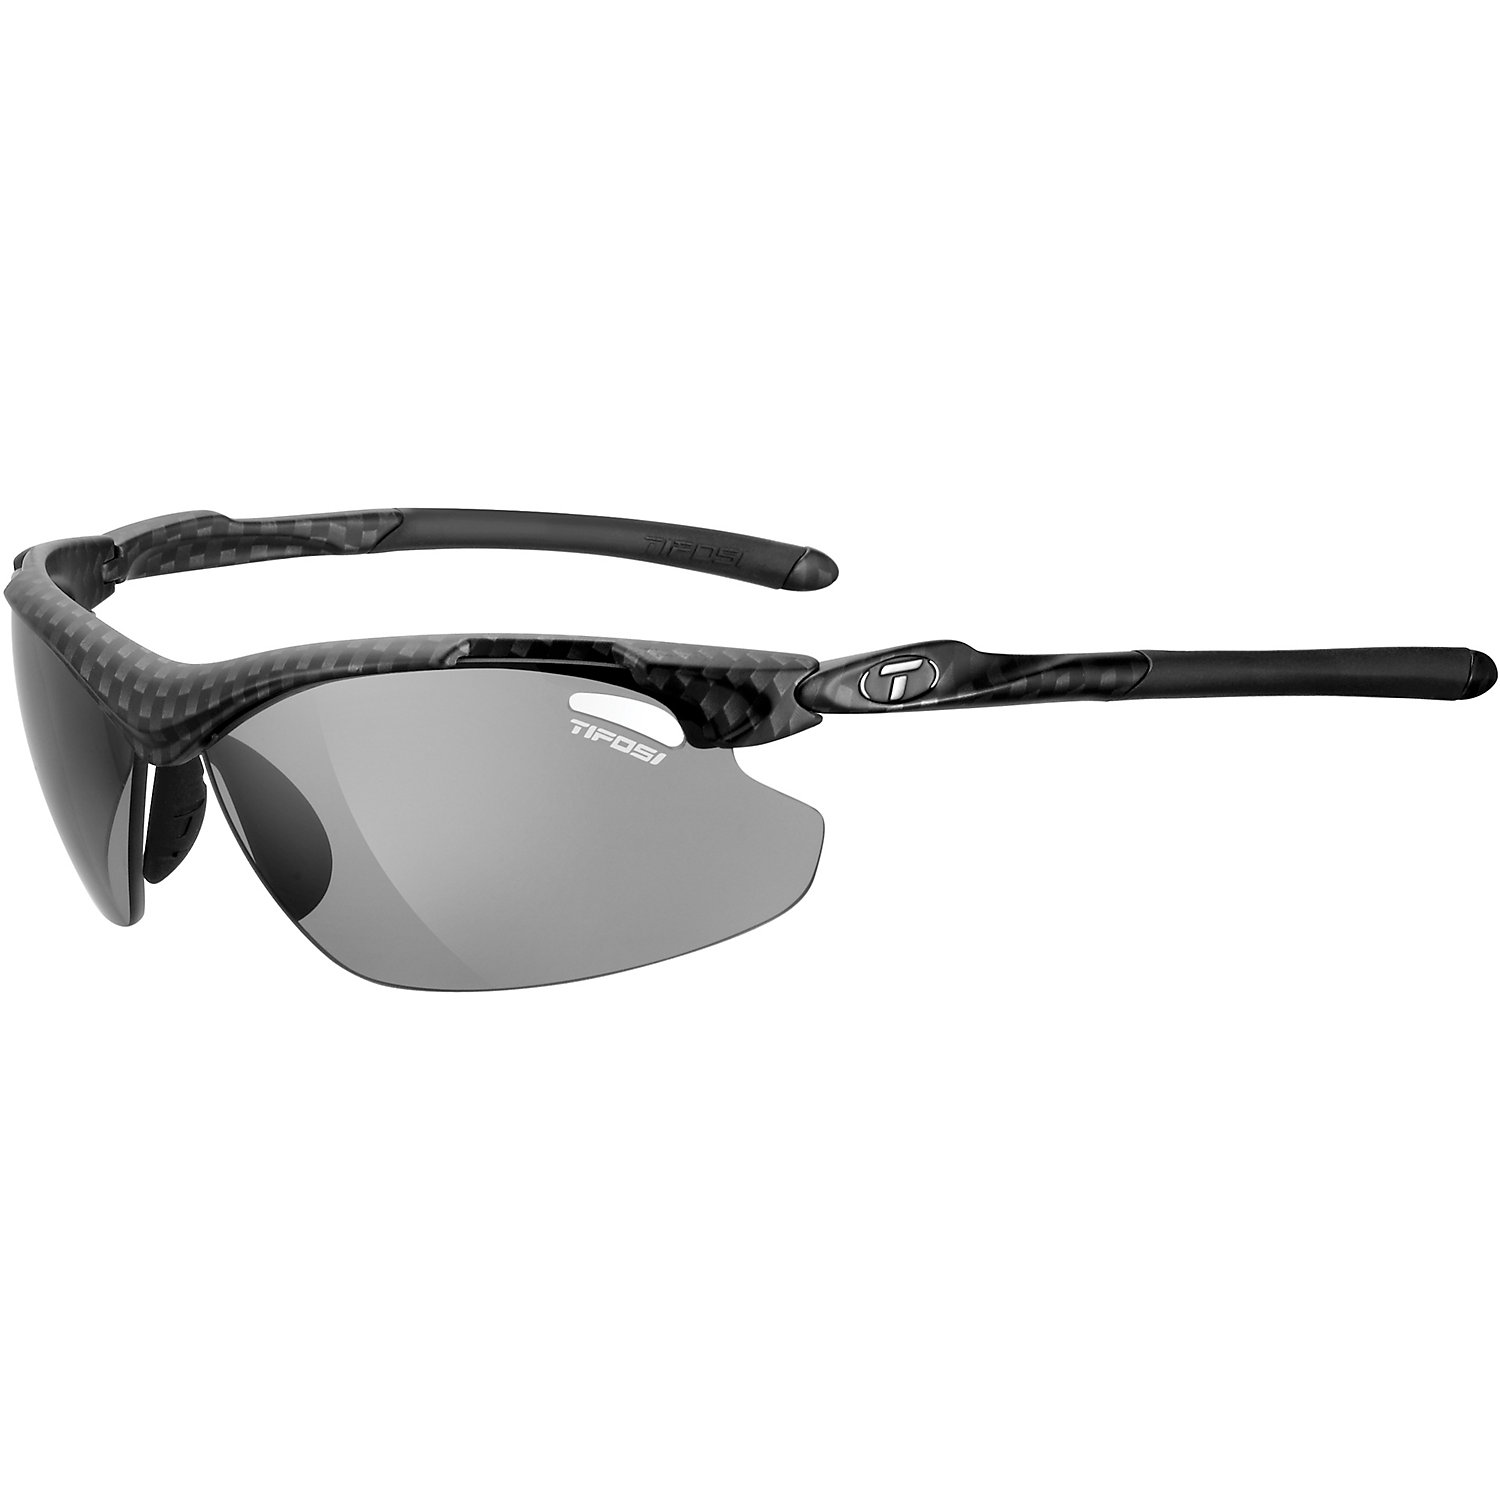 40b5a78c8d Tifosi Tyrant 2.0 Polarized Sunglasses. Double tap to zoom